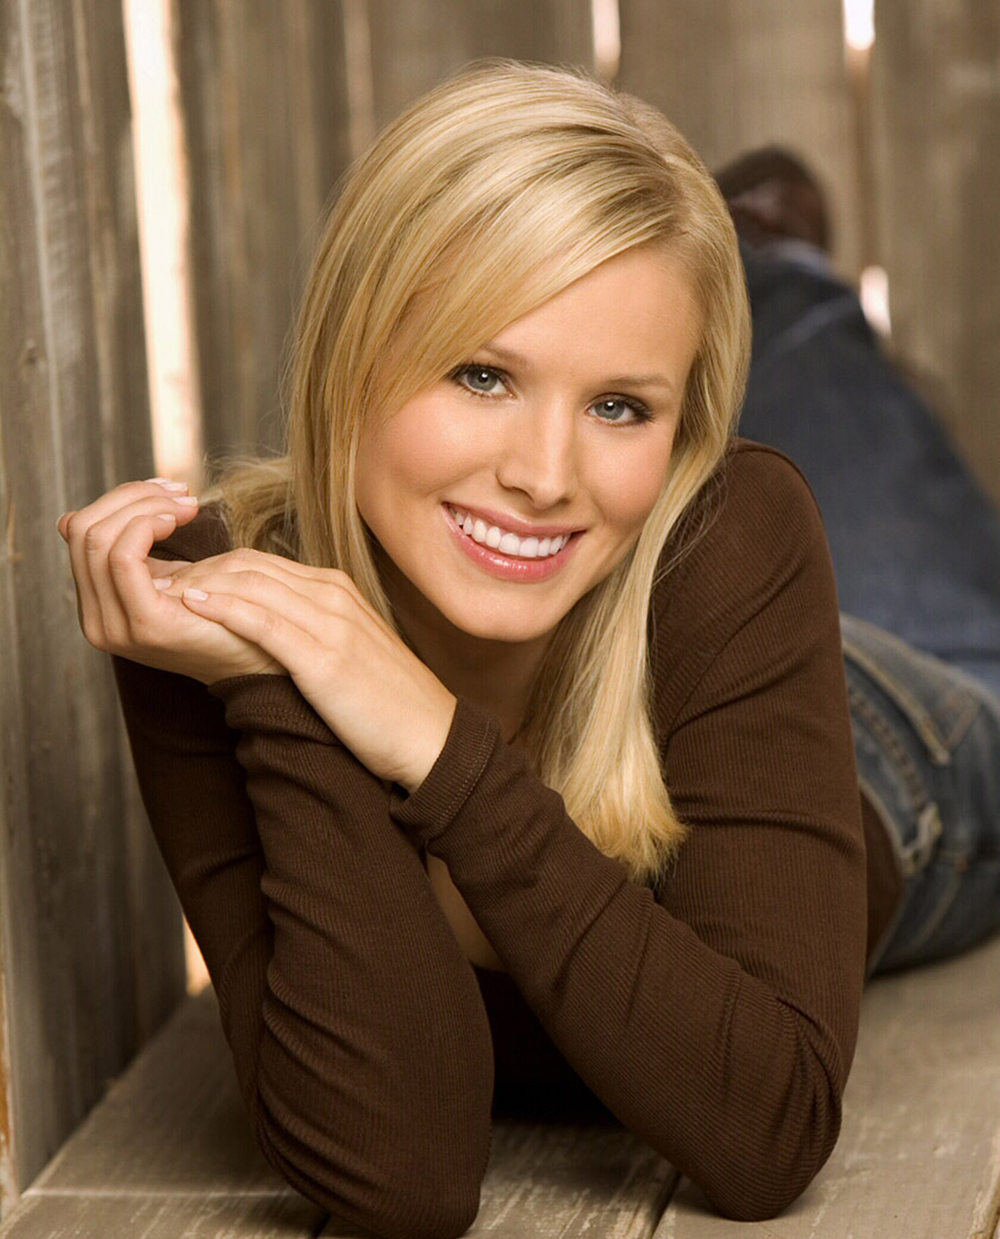 veronica mars photoshoots - Veronica Mars Photo (9575351) - Fanpop